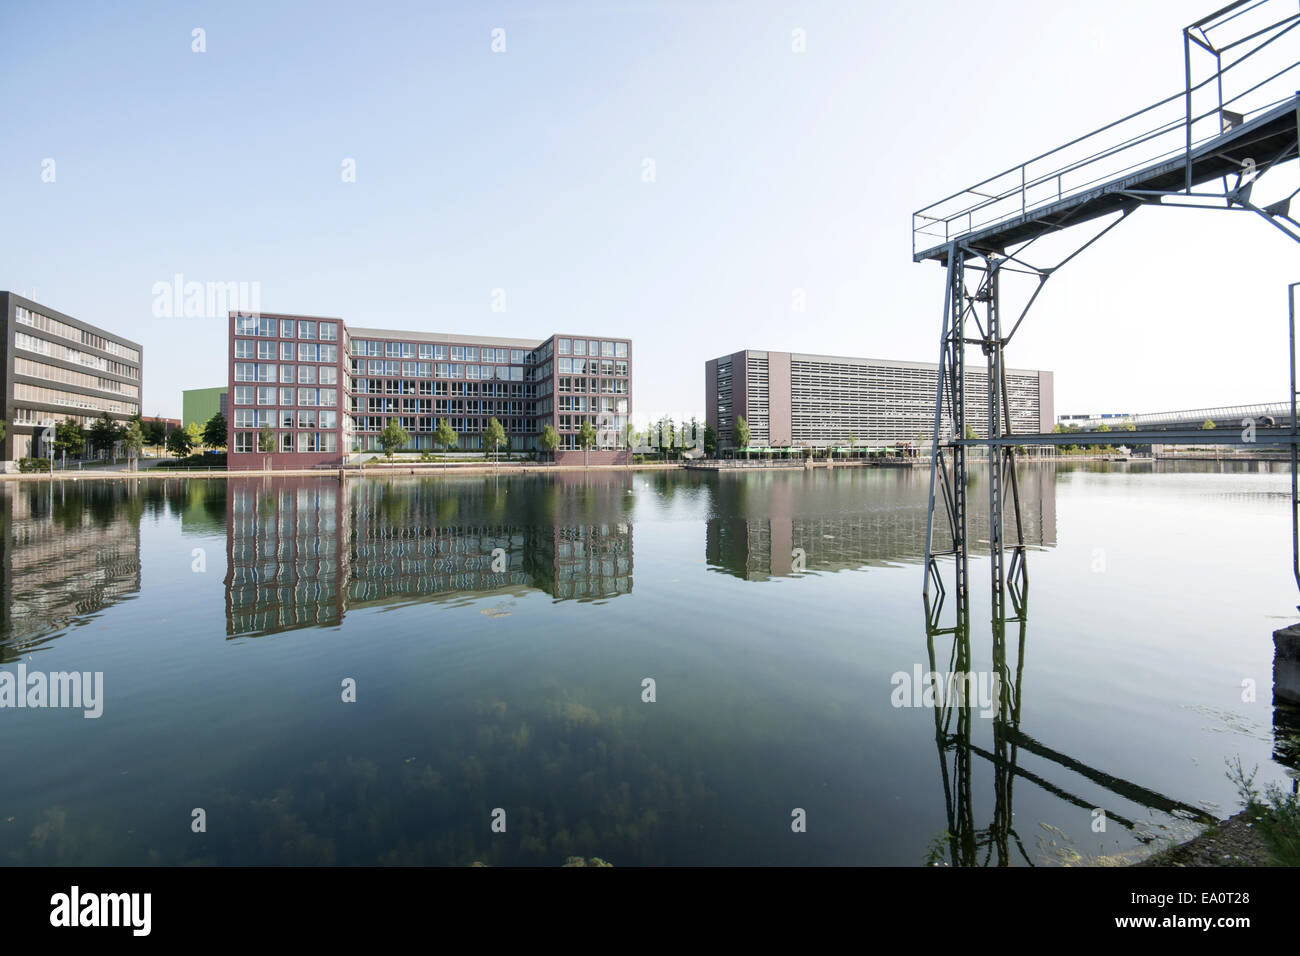 Inner harbor Duisburg, Germany Stock Photo